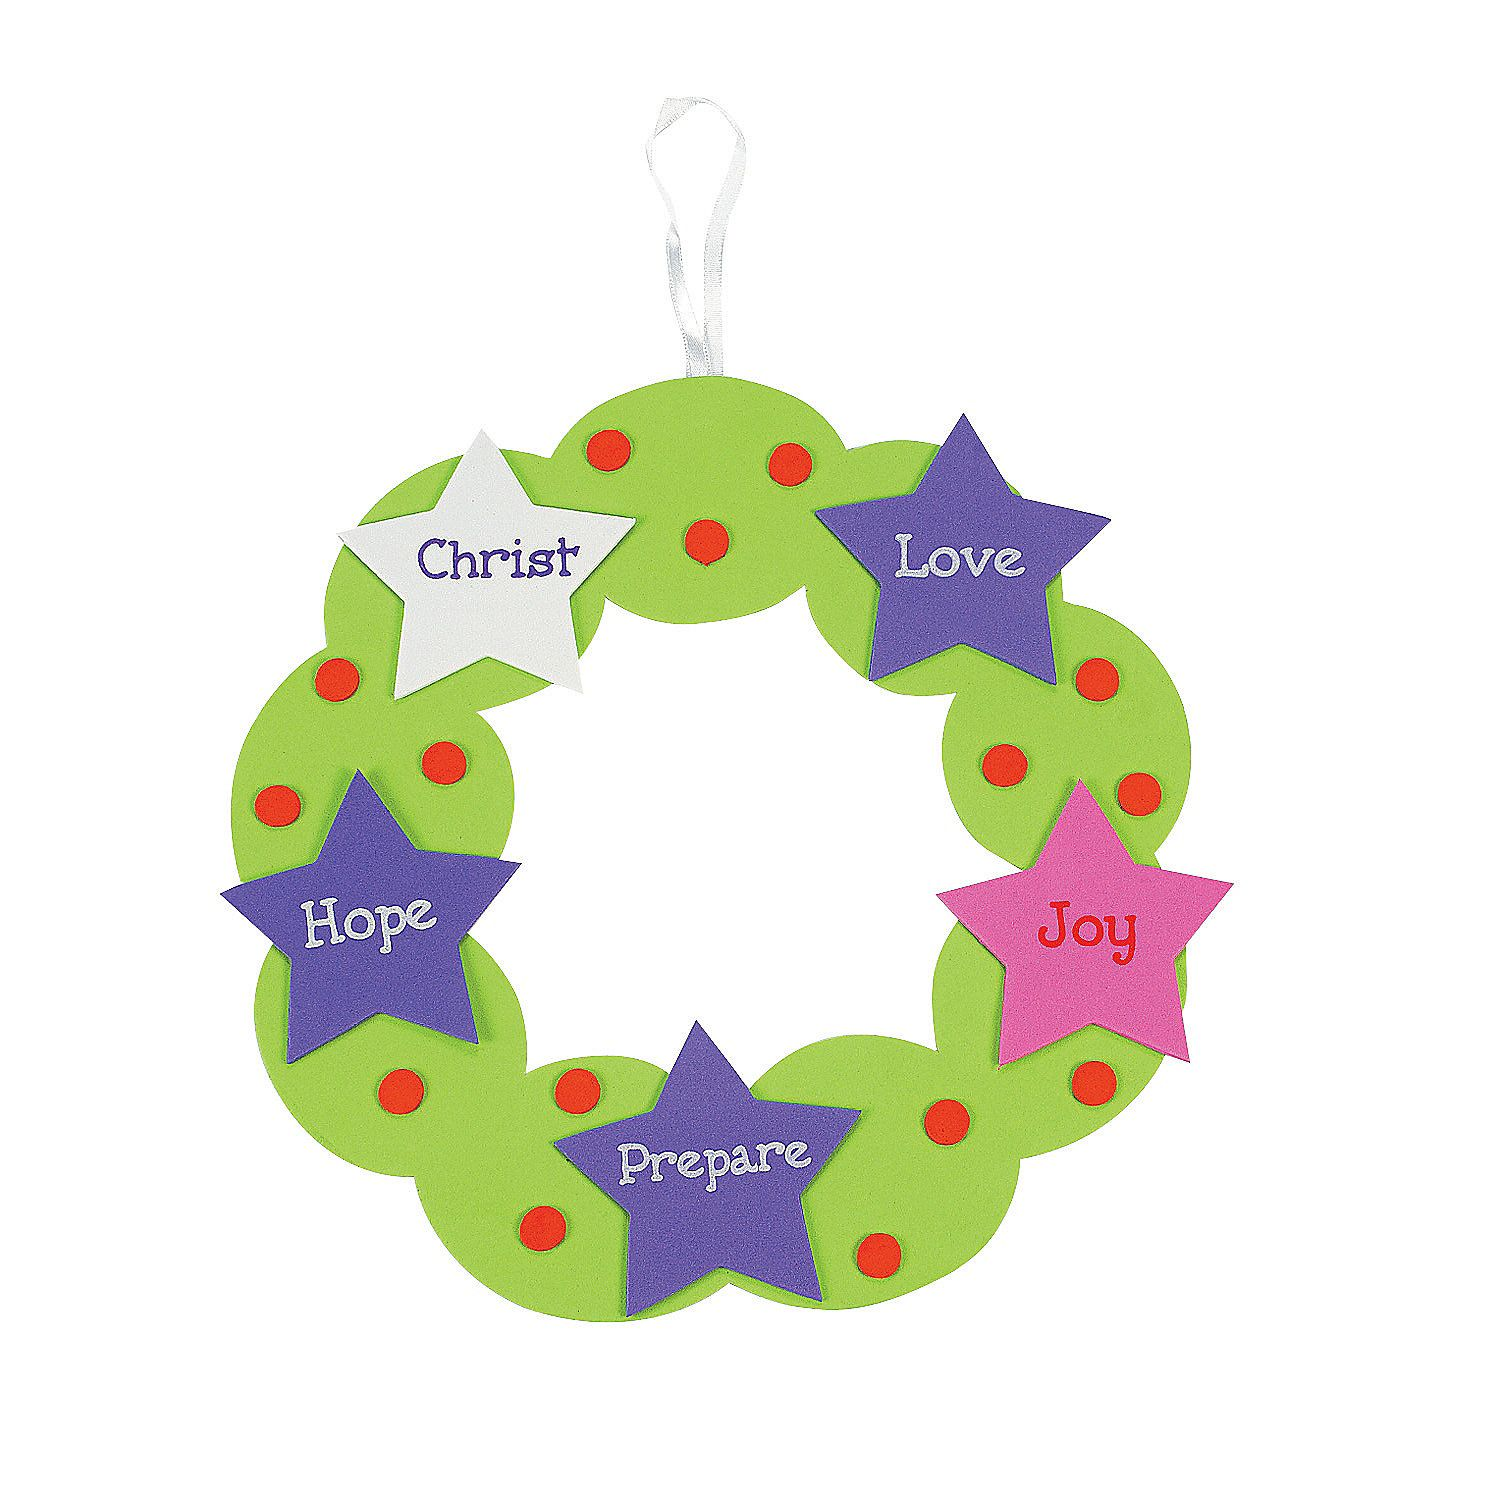 Advent Wreath Craft Kit From Orientaltrading I Could